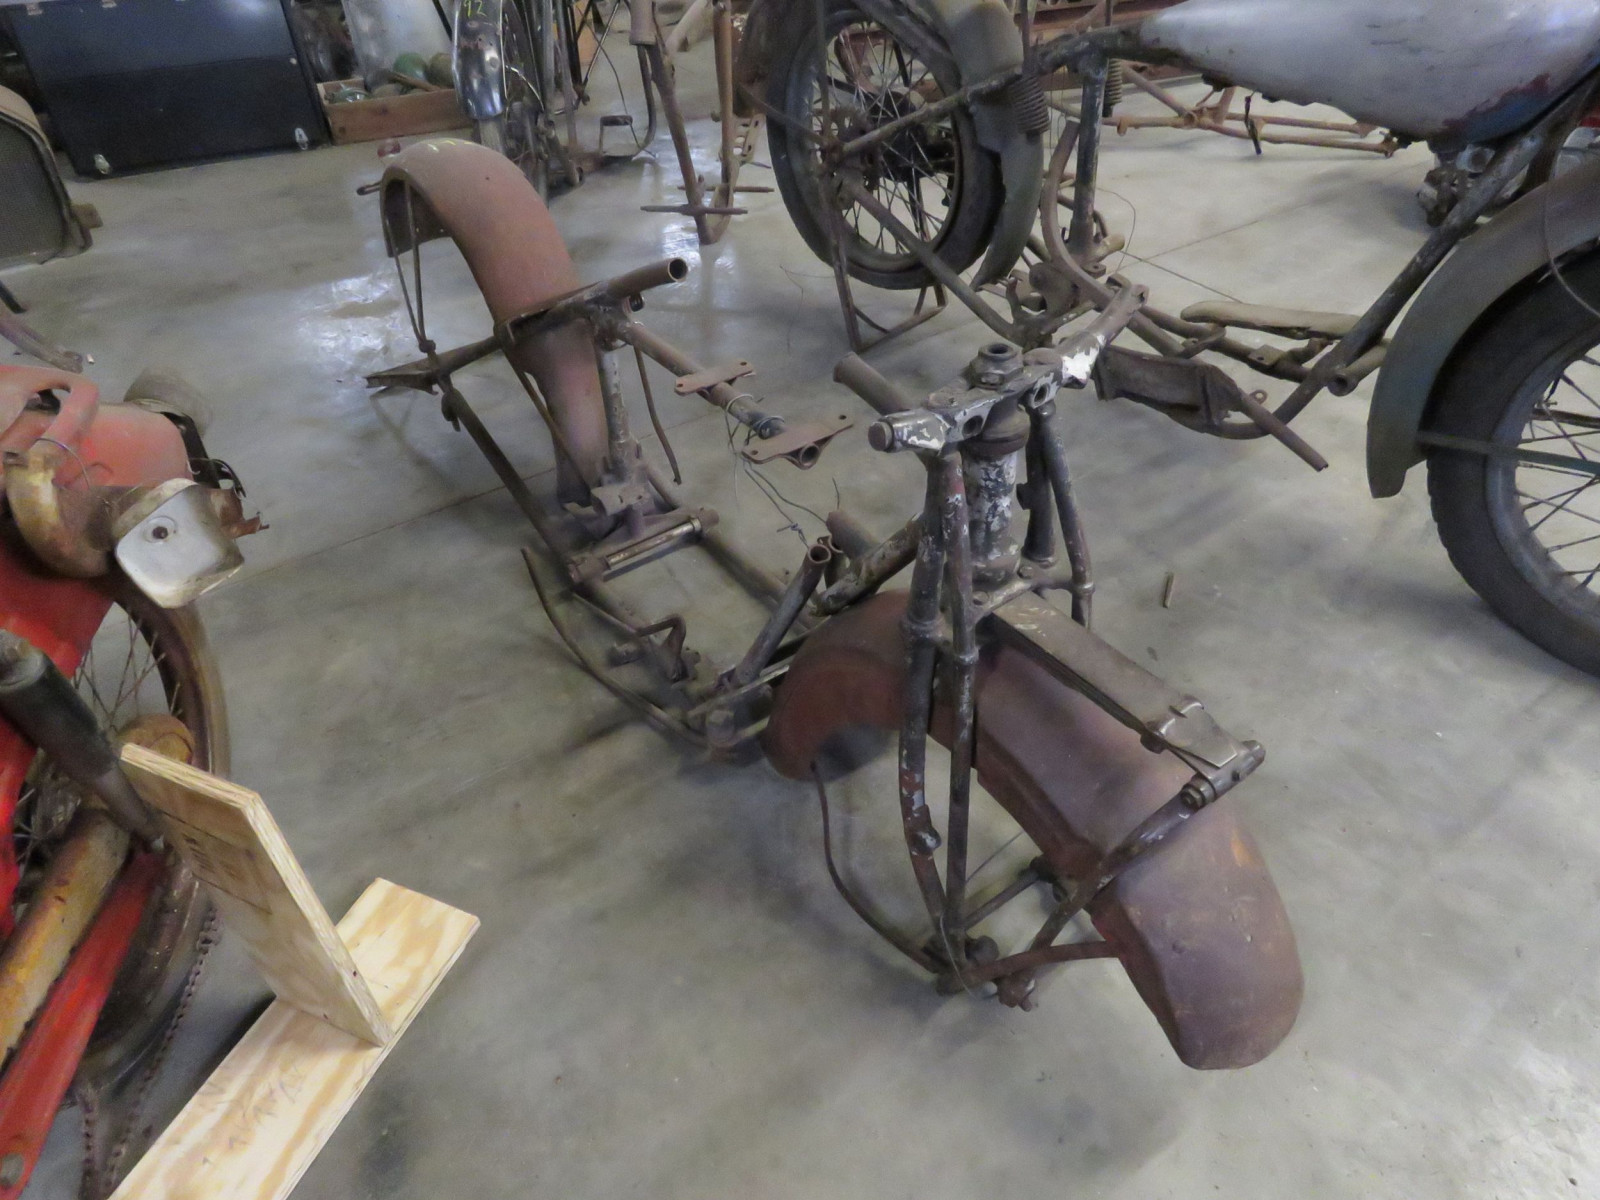 Vintage Indian Motorcycle Frame Project - Image 1